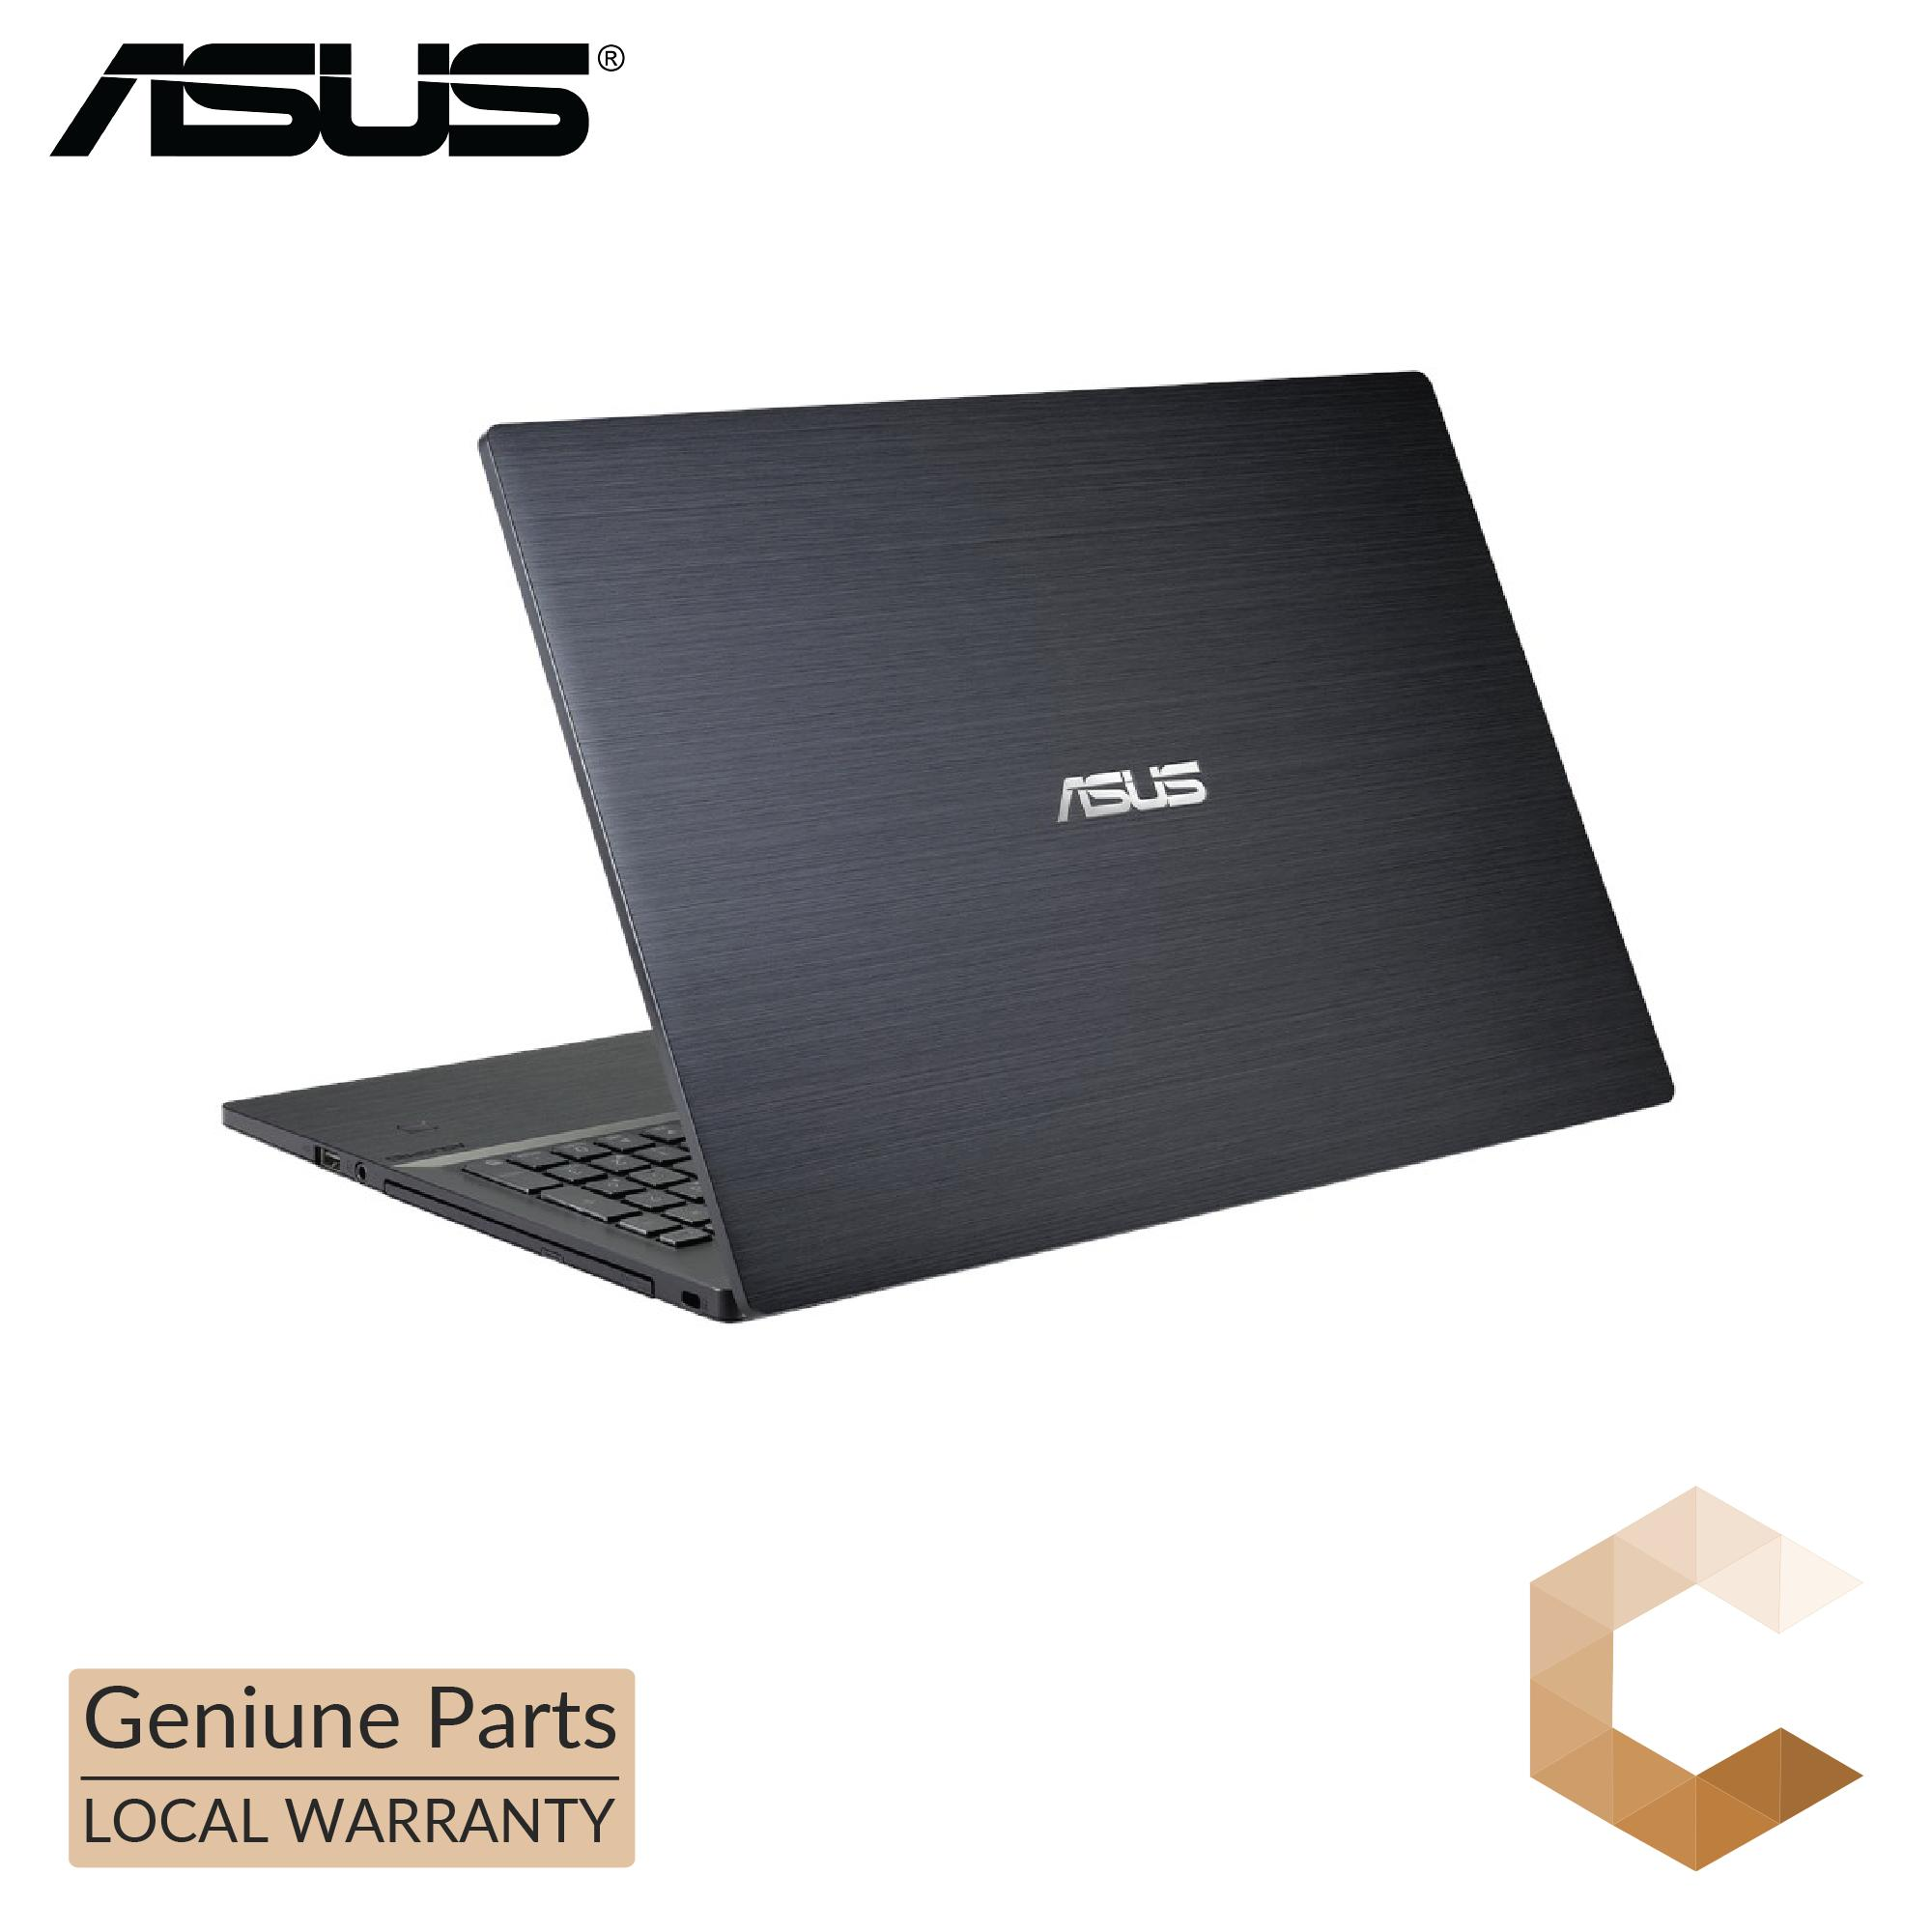 ASUS Notebook I7-8565U 15.6 FHD - P2540FB-DM0015R